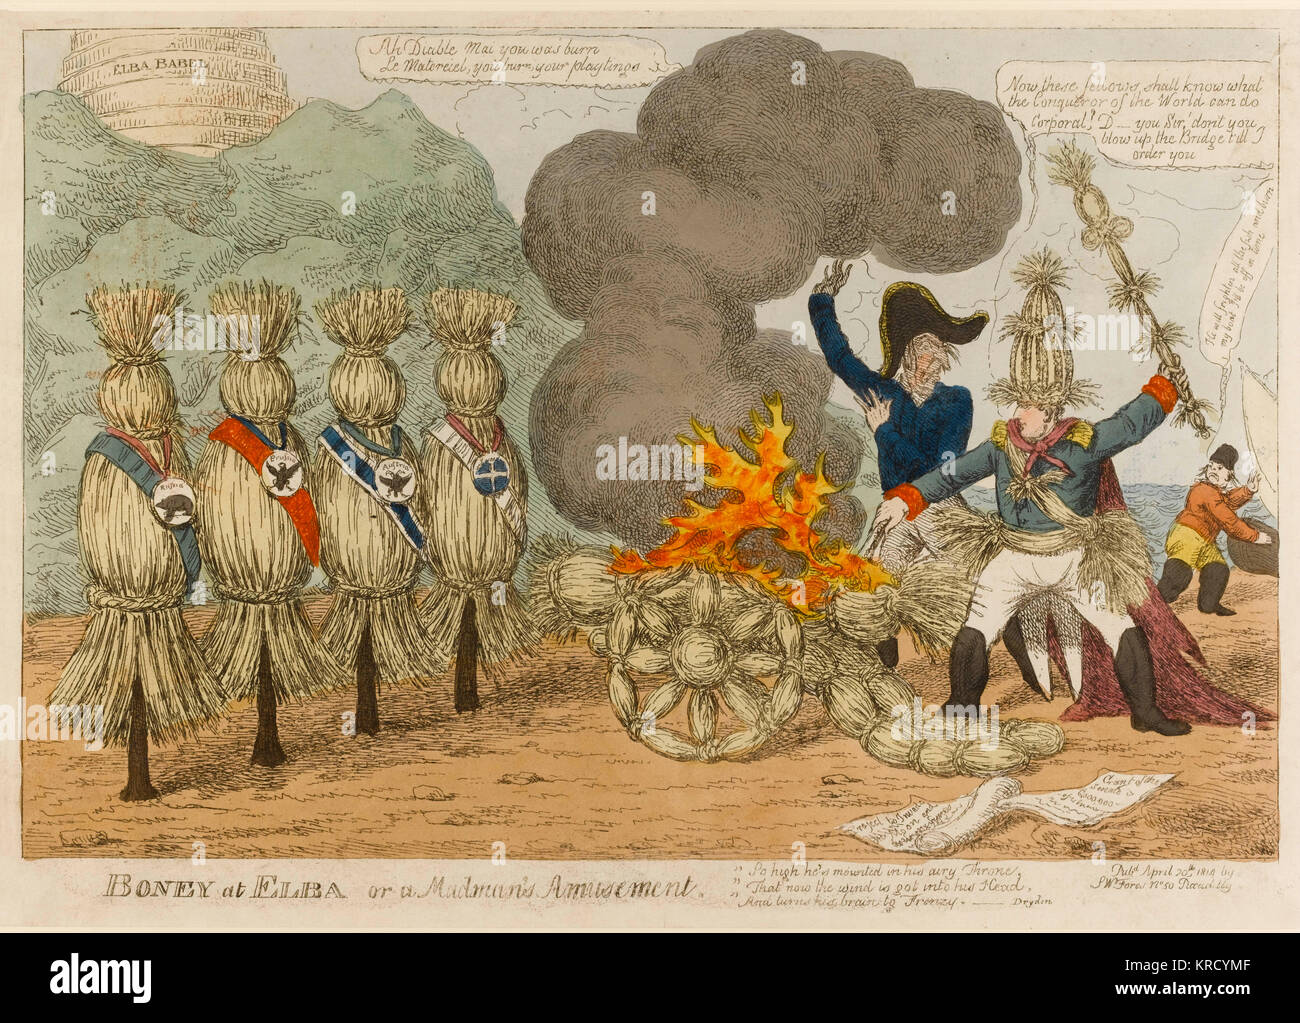 Satirical cartoon, Boney at Elba or a Madman's amusement.  A mad Napoleon banished to Elba plays at being Conqueror - Stock Image